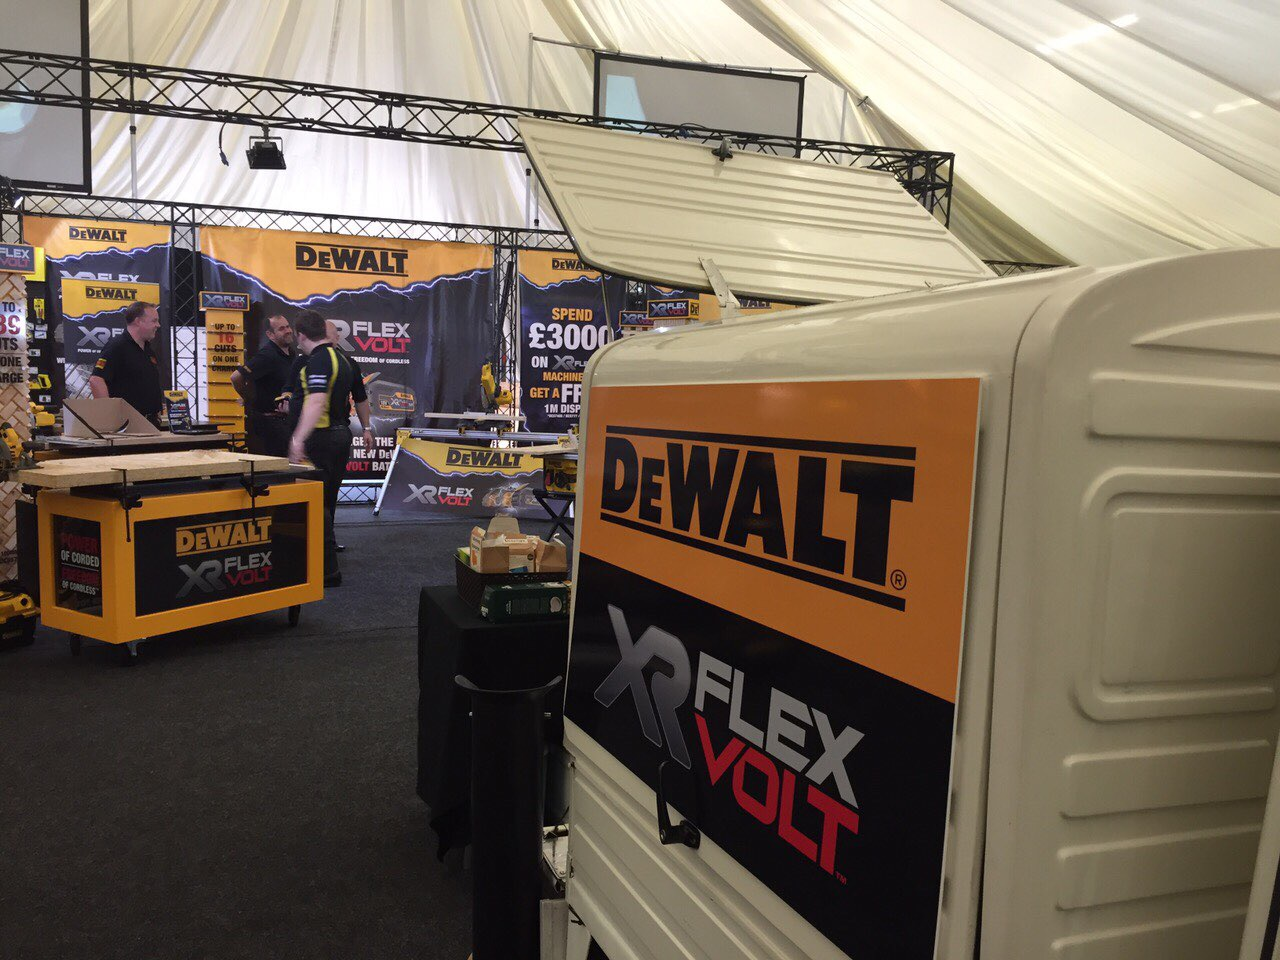 The Mobile Coffee Bean mobile coffee van branded for DeWalt